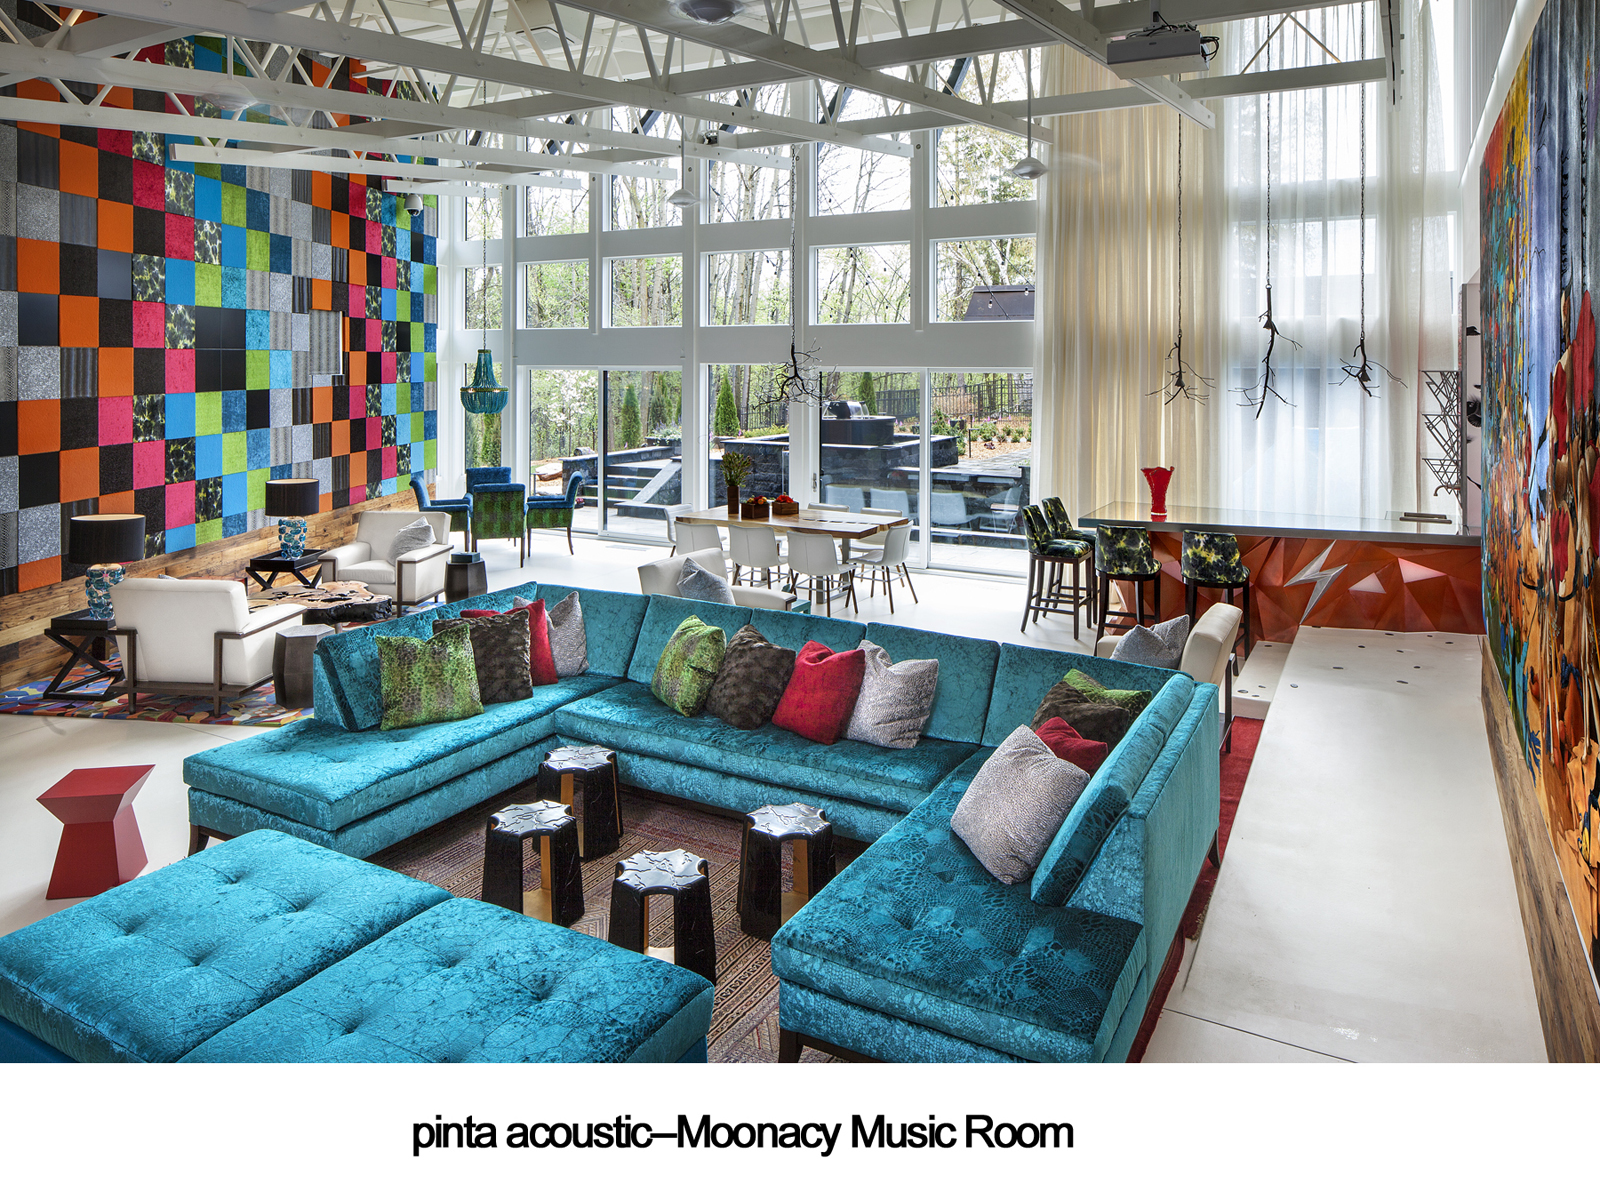 pinta acoustic, inc.--Moonacy Music Room, Windows